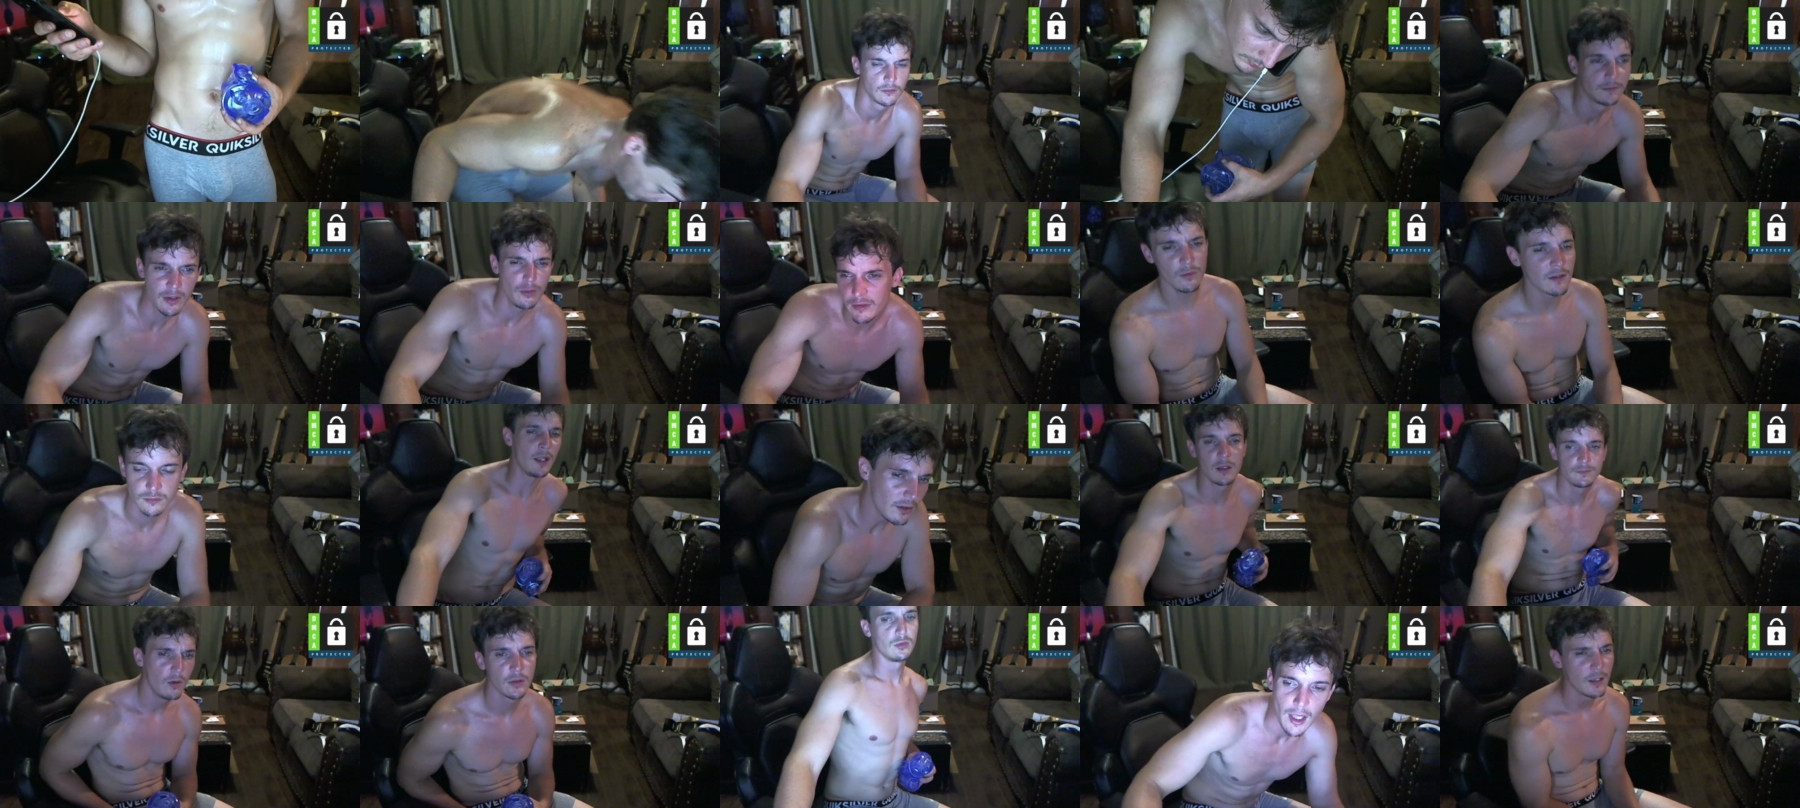 Ohhcaden Chaturbate 23-06-2021 Male Topless